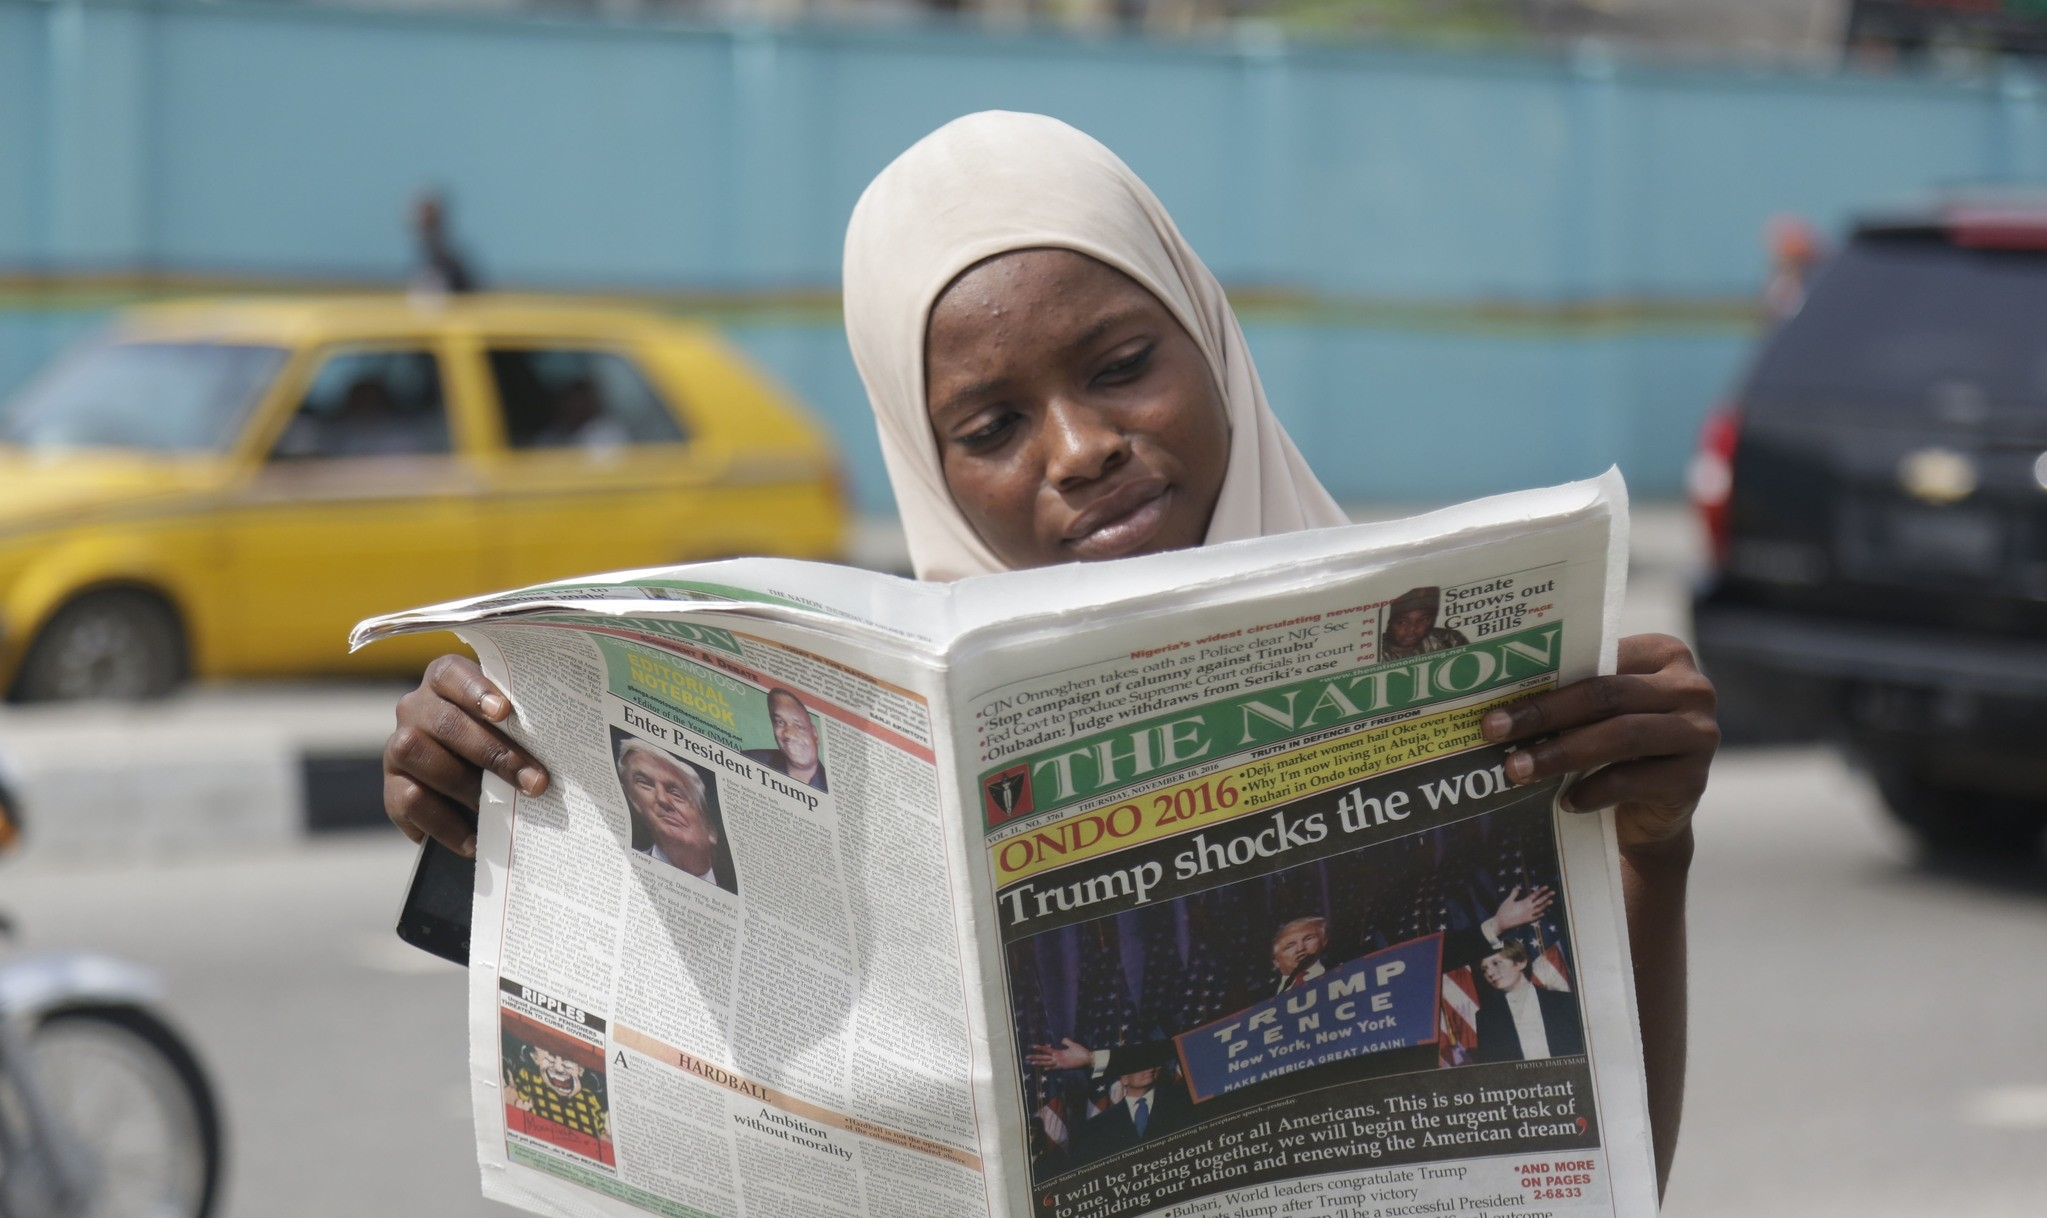 A muslim woman reads a newspapers on a street reporting with headline ,Trump shocks the world, to refer to U.S President-elect Trump's victory in Lagos, Nigeria, Nov. 10, 2016. (AP Photo)